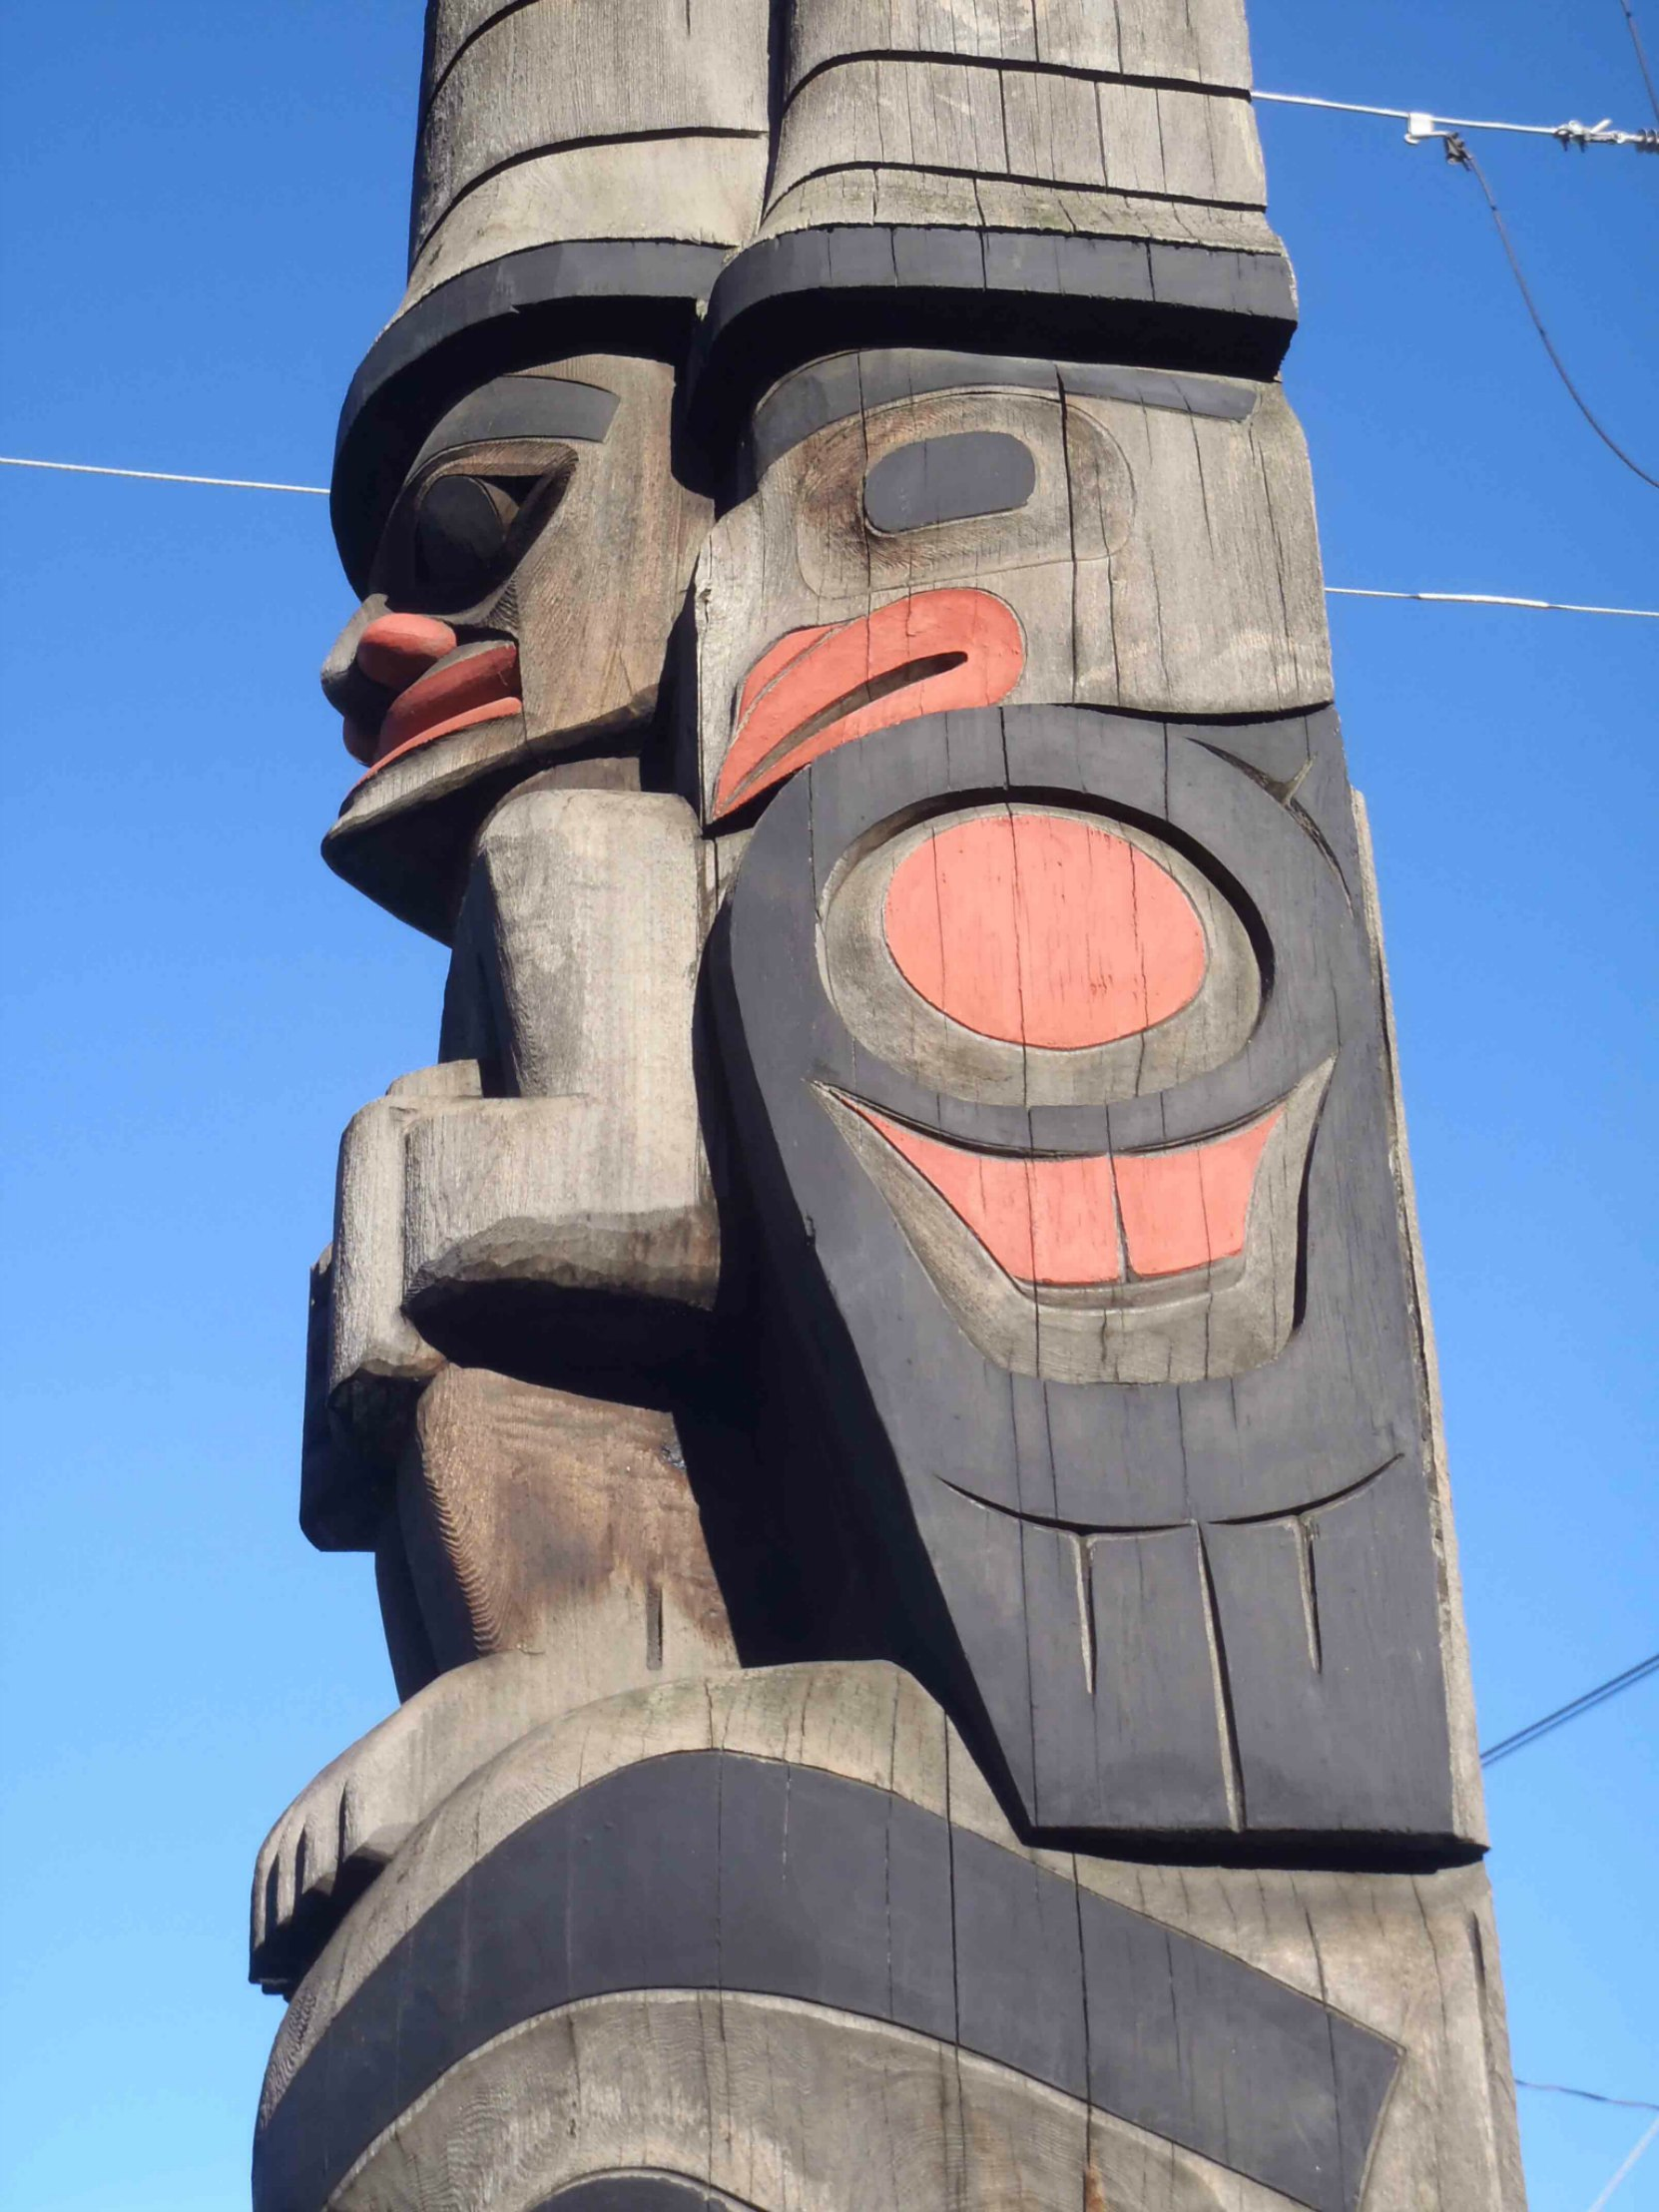 The Guardians pole, Guardians figures, Government Street at Kenneth Street, Duncan, B.C.